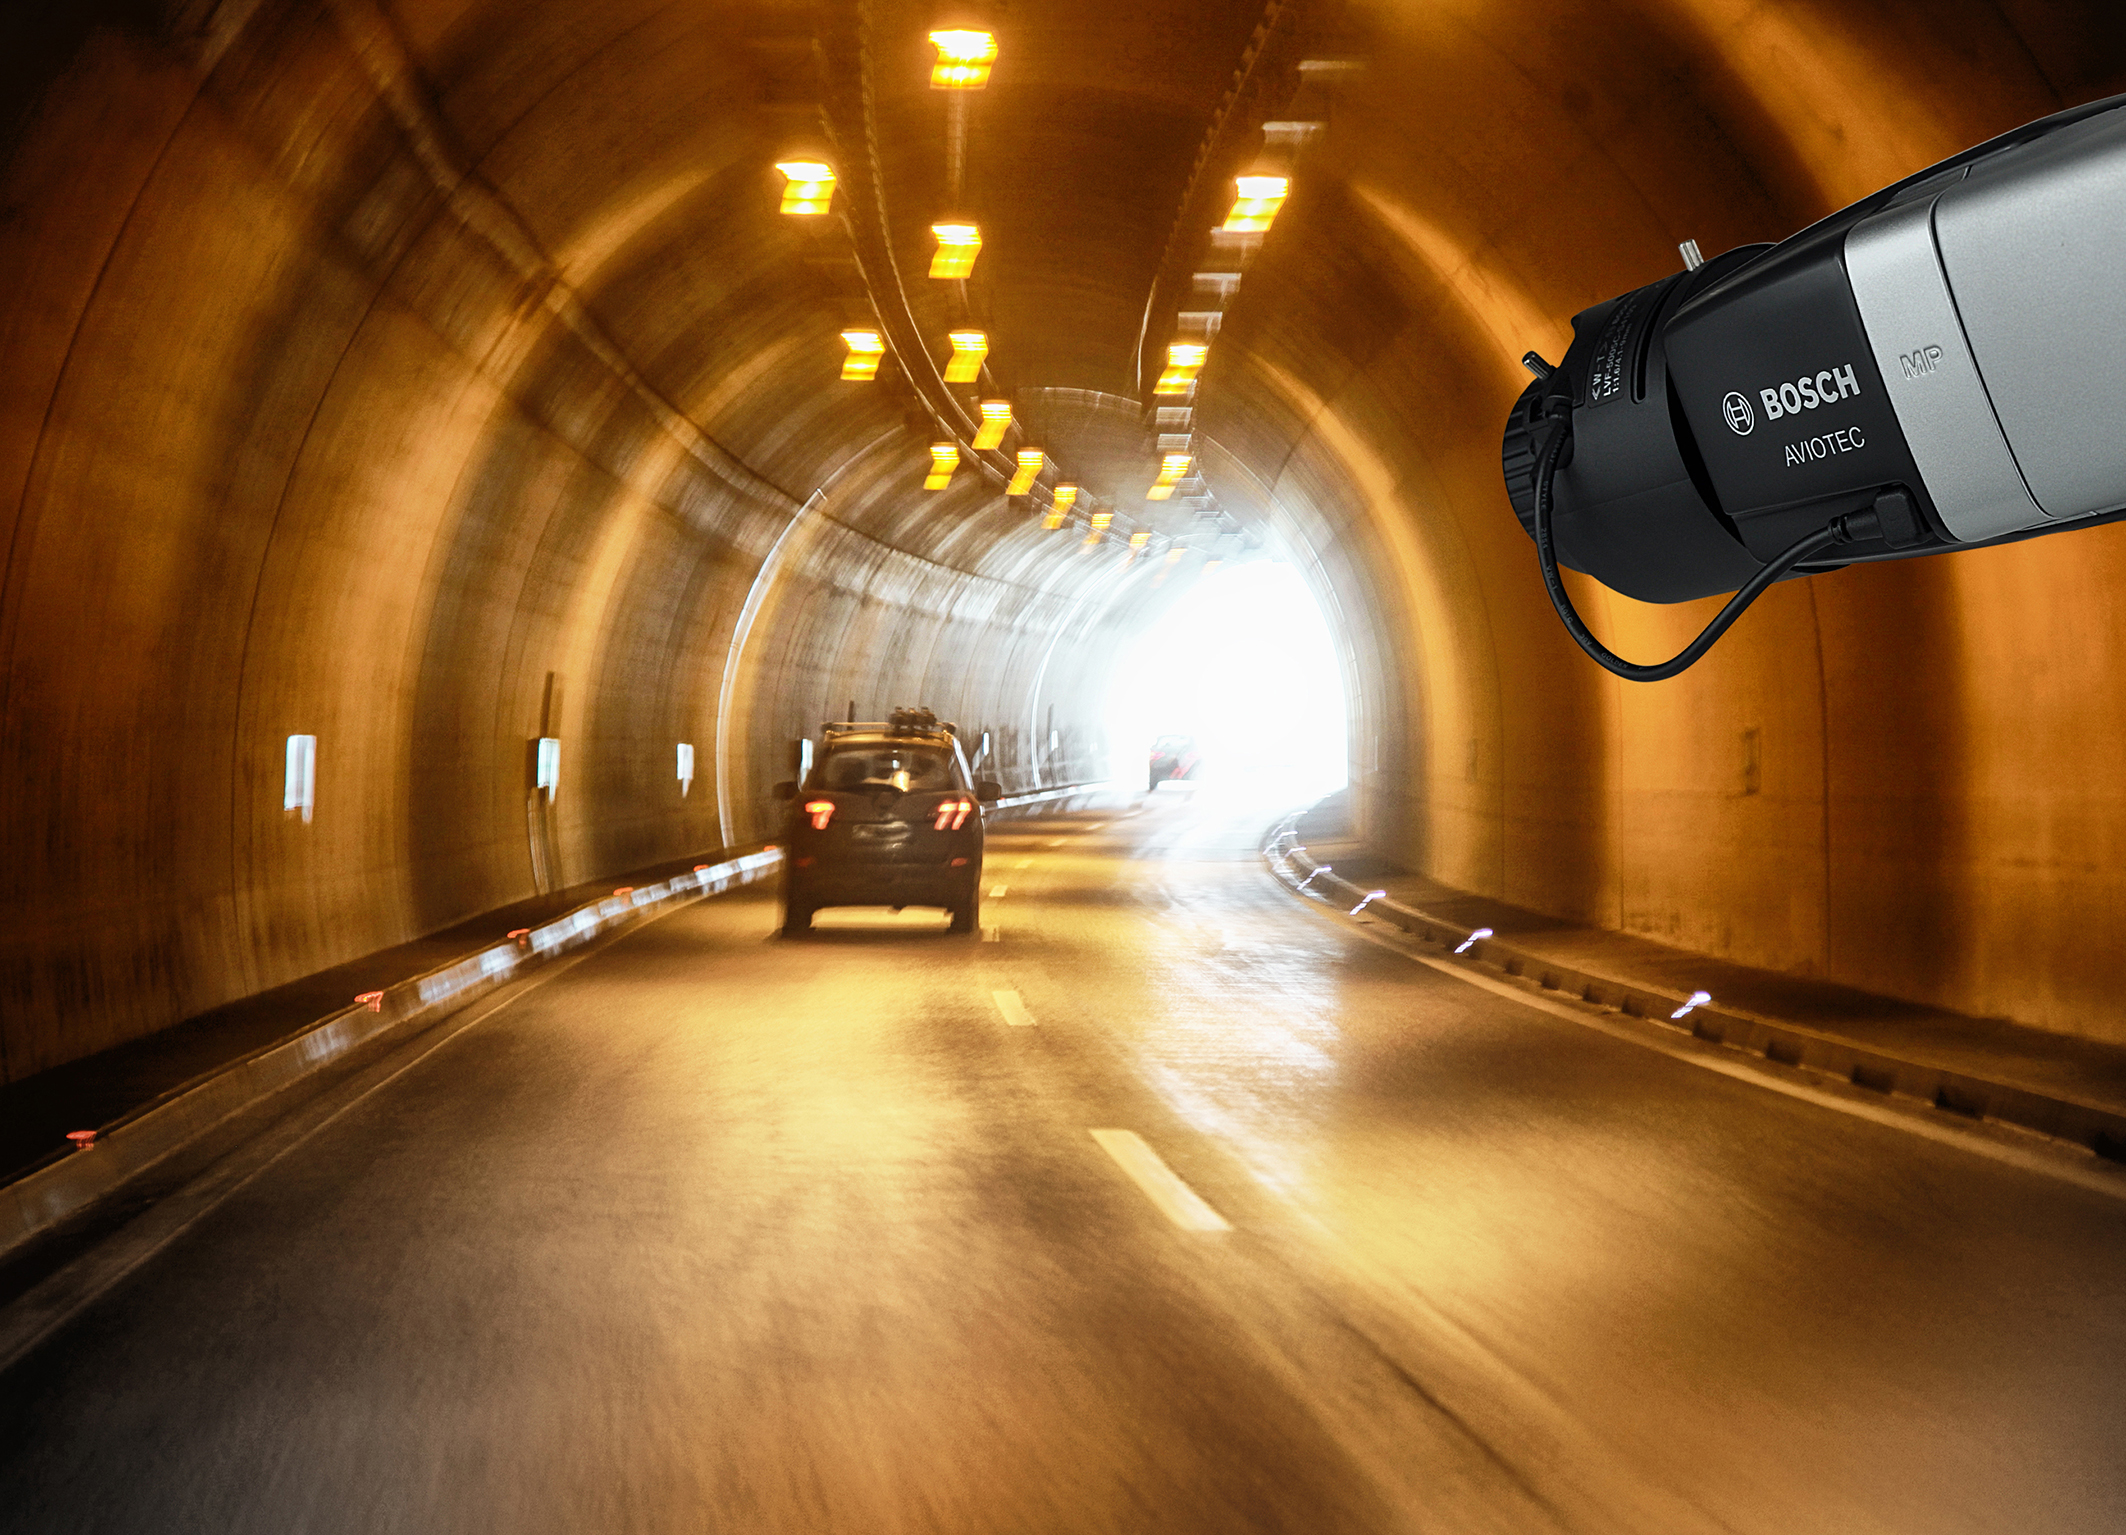 Video-based fire detection AVIOTEC from Bosch optimized for tunnels